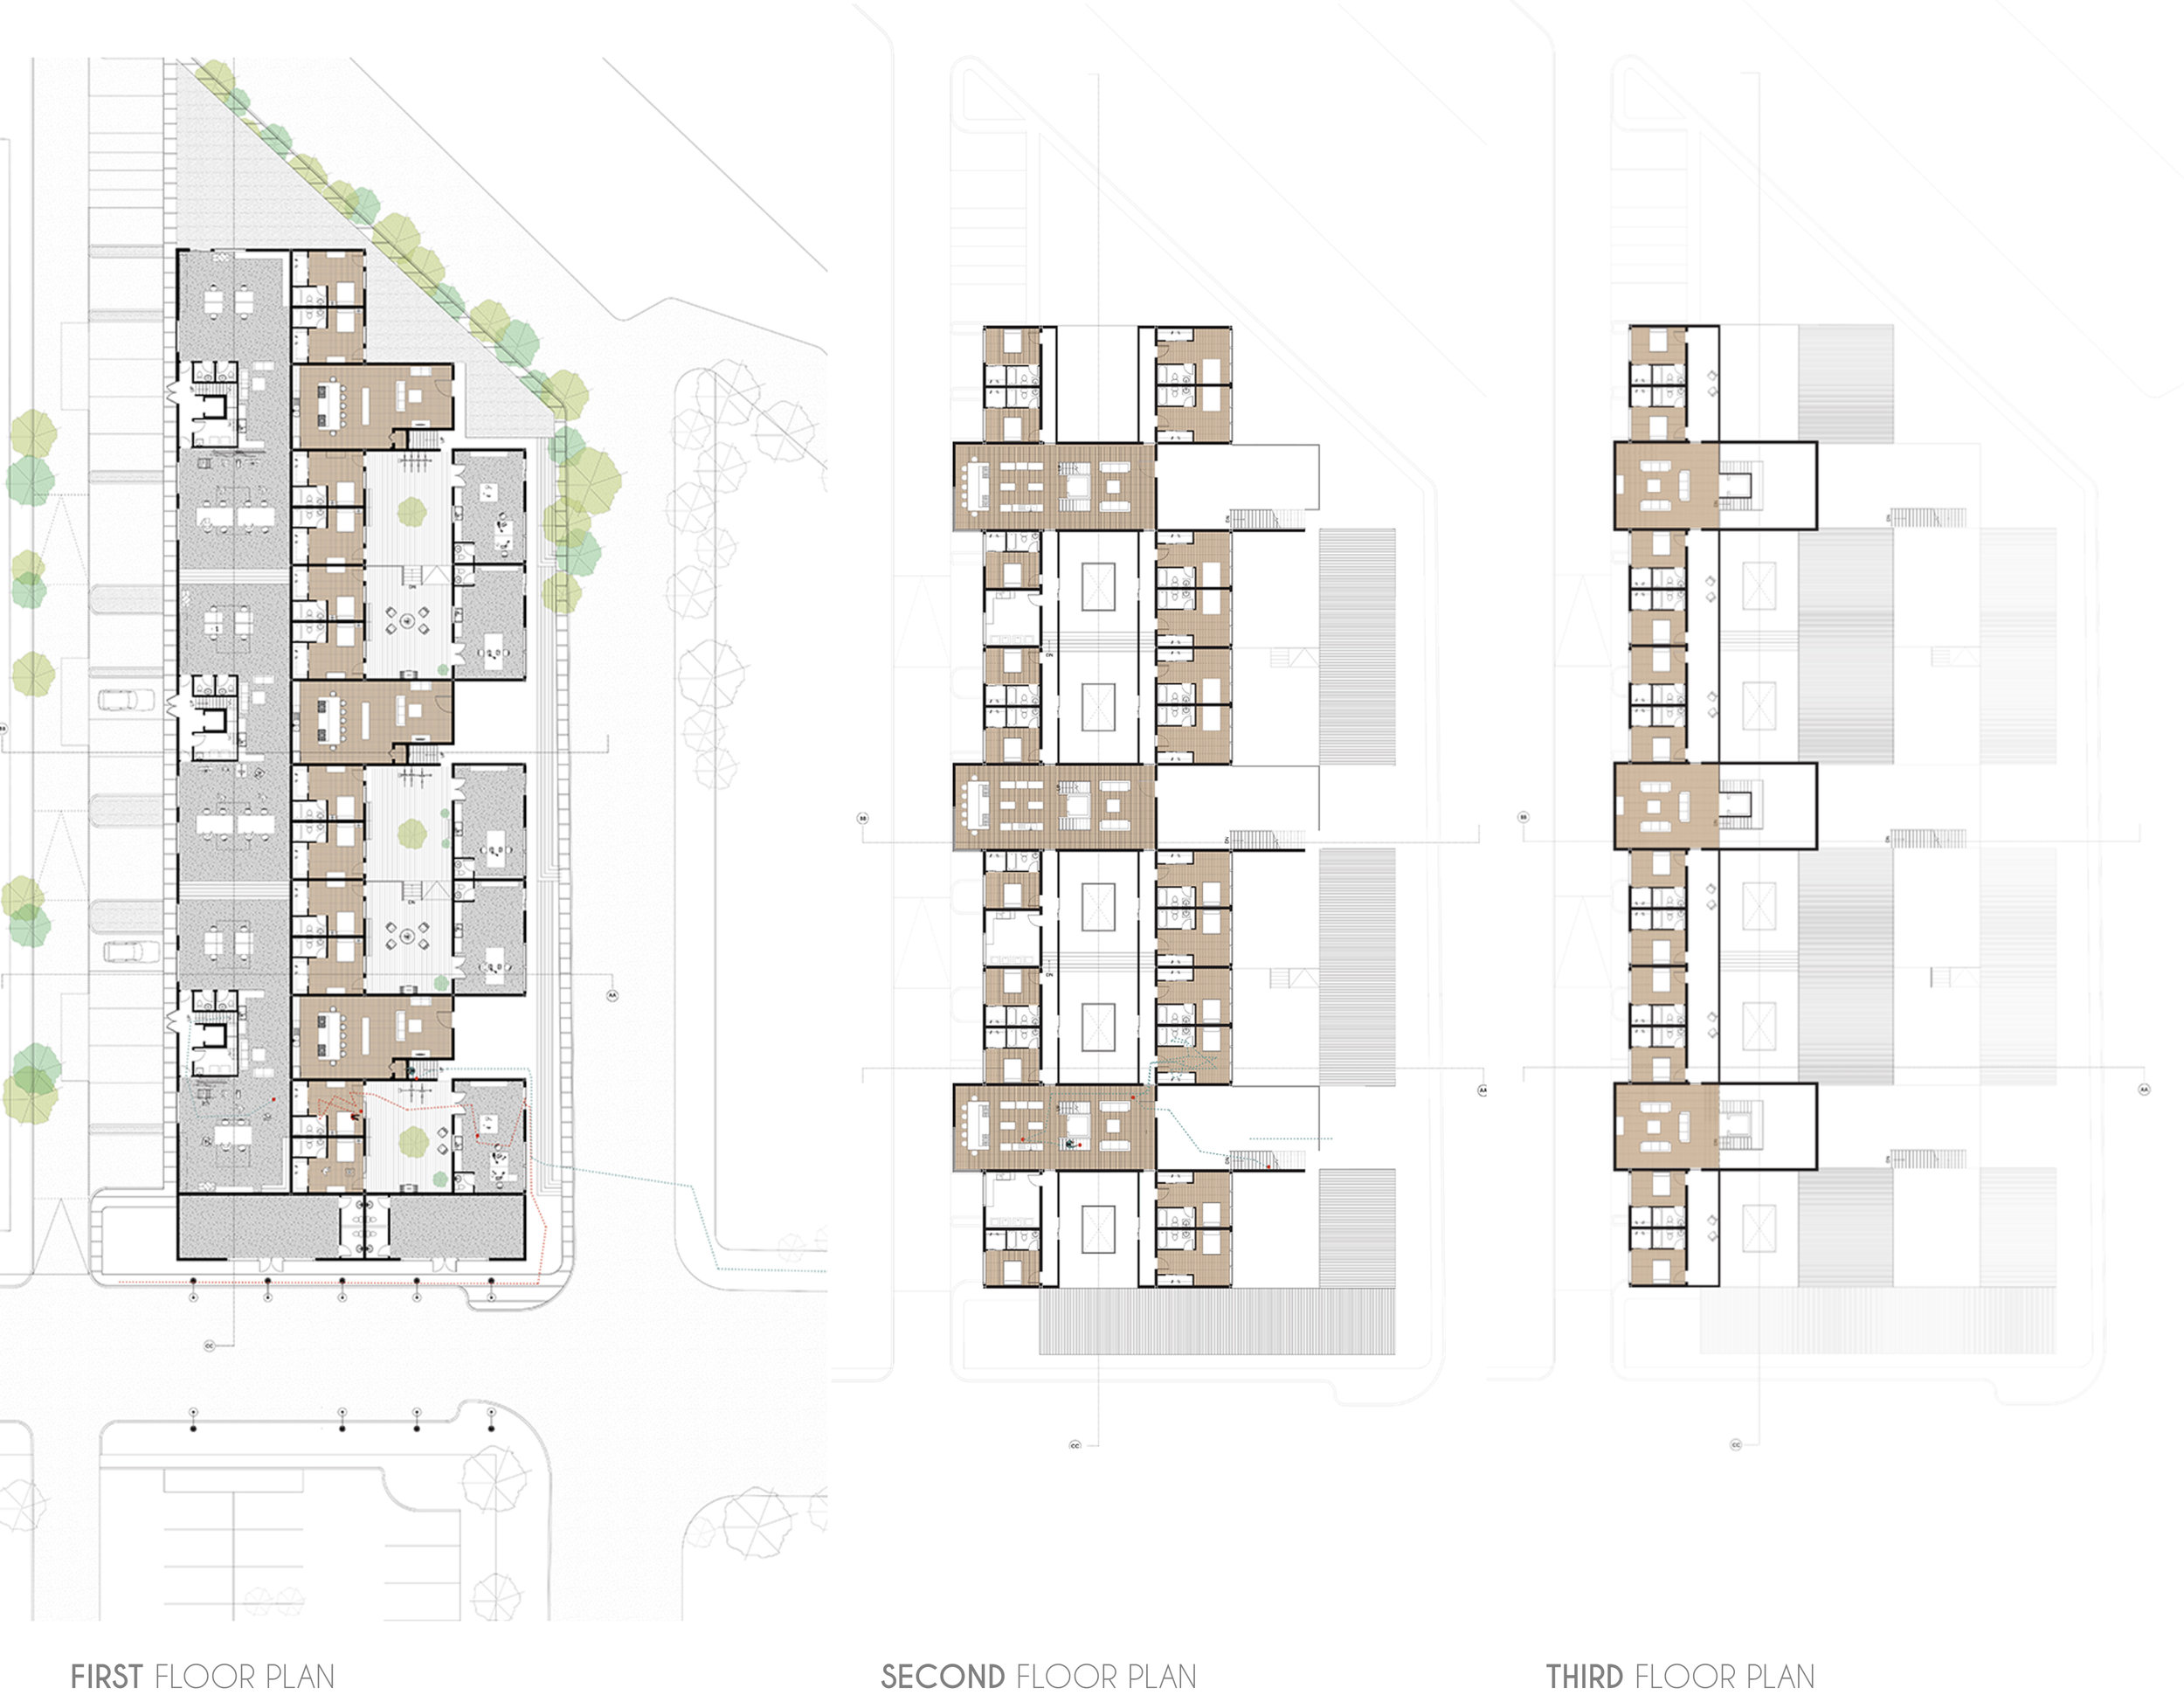 Floor Plans showing layering of spaces-from Public to Private as you move upwards. Also, materiality has been used to denote these transitions.